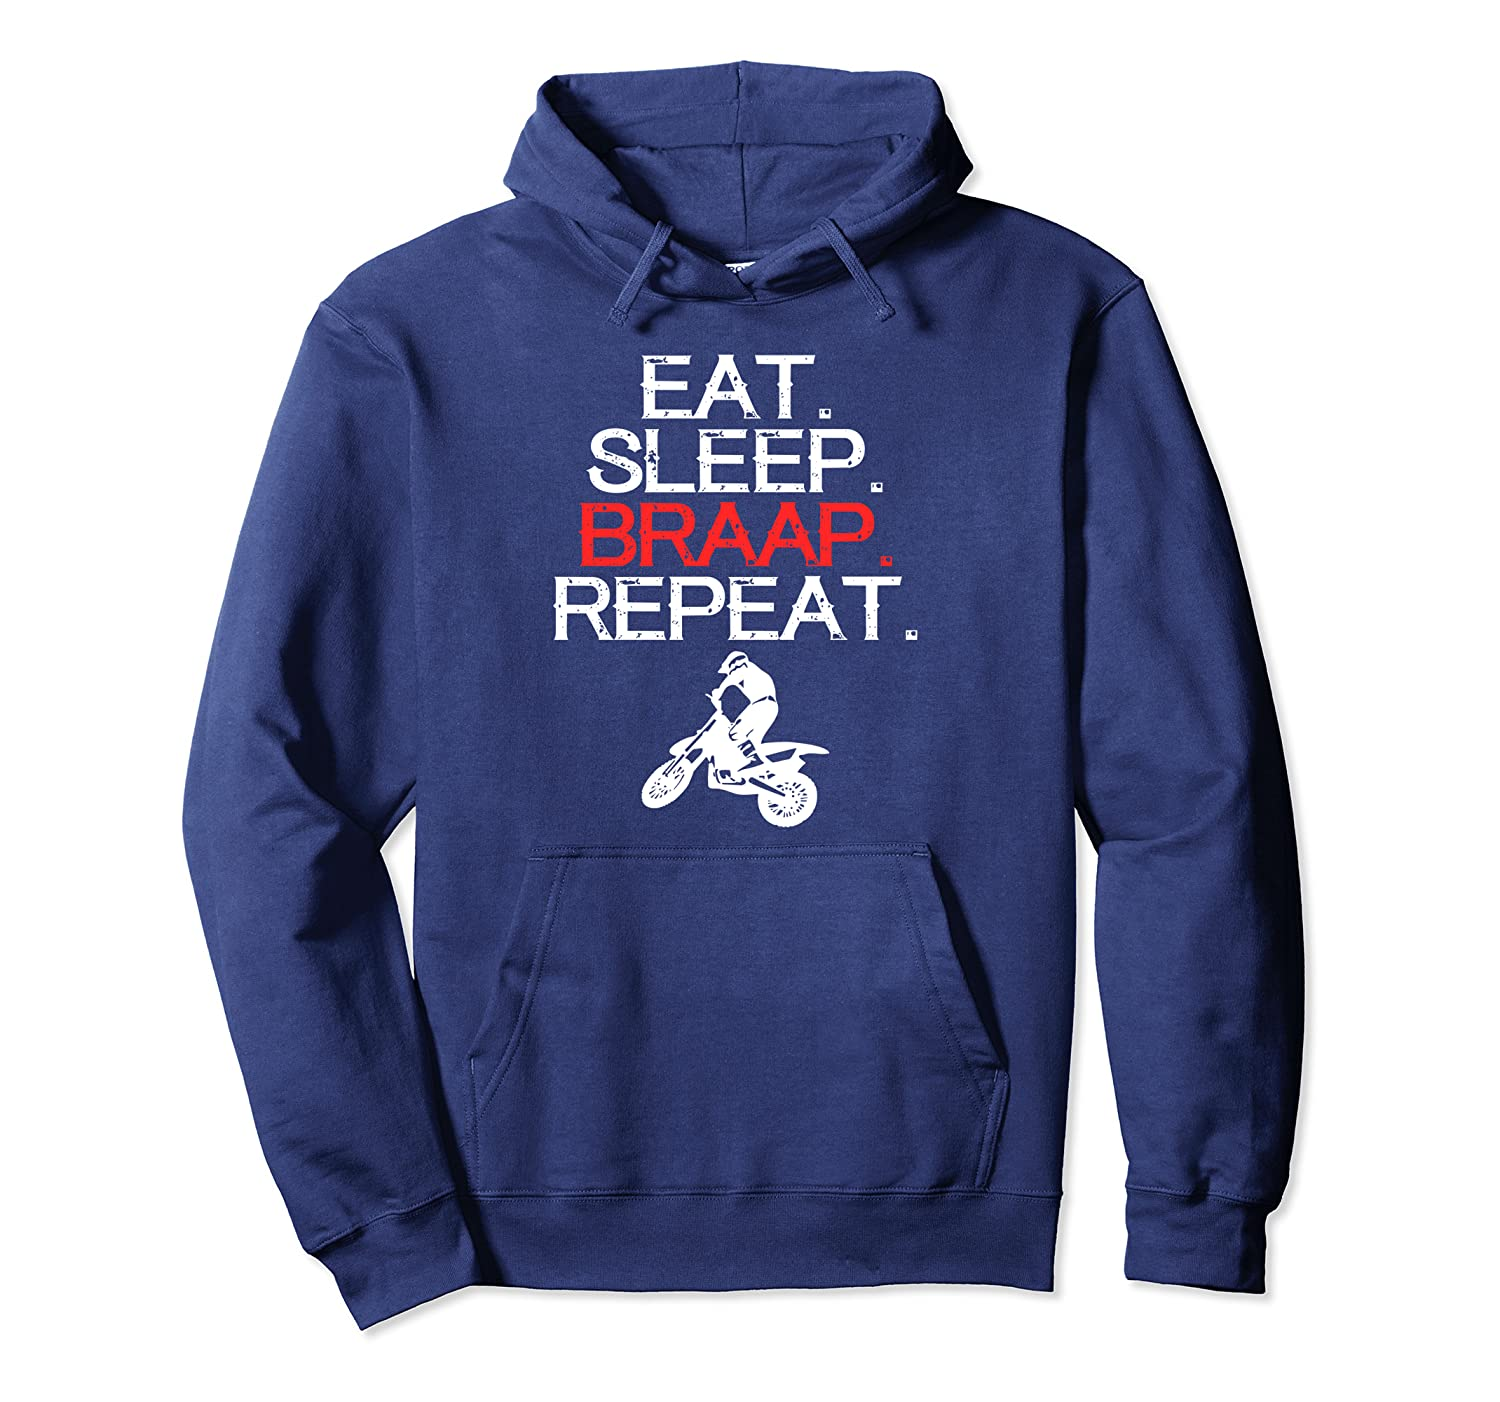 Funny Eat Sleep Braap Repeat Braap Dirt Bike Pullover Hoodie